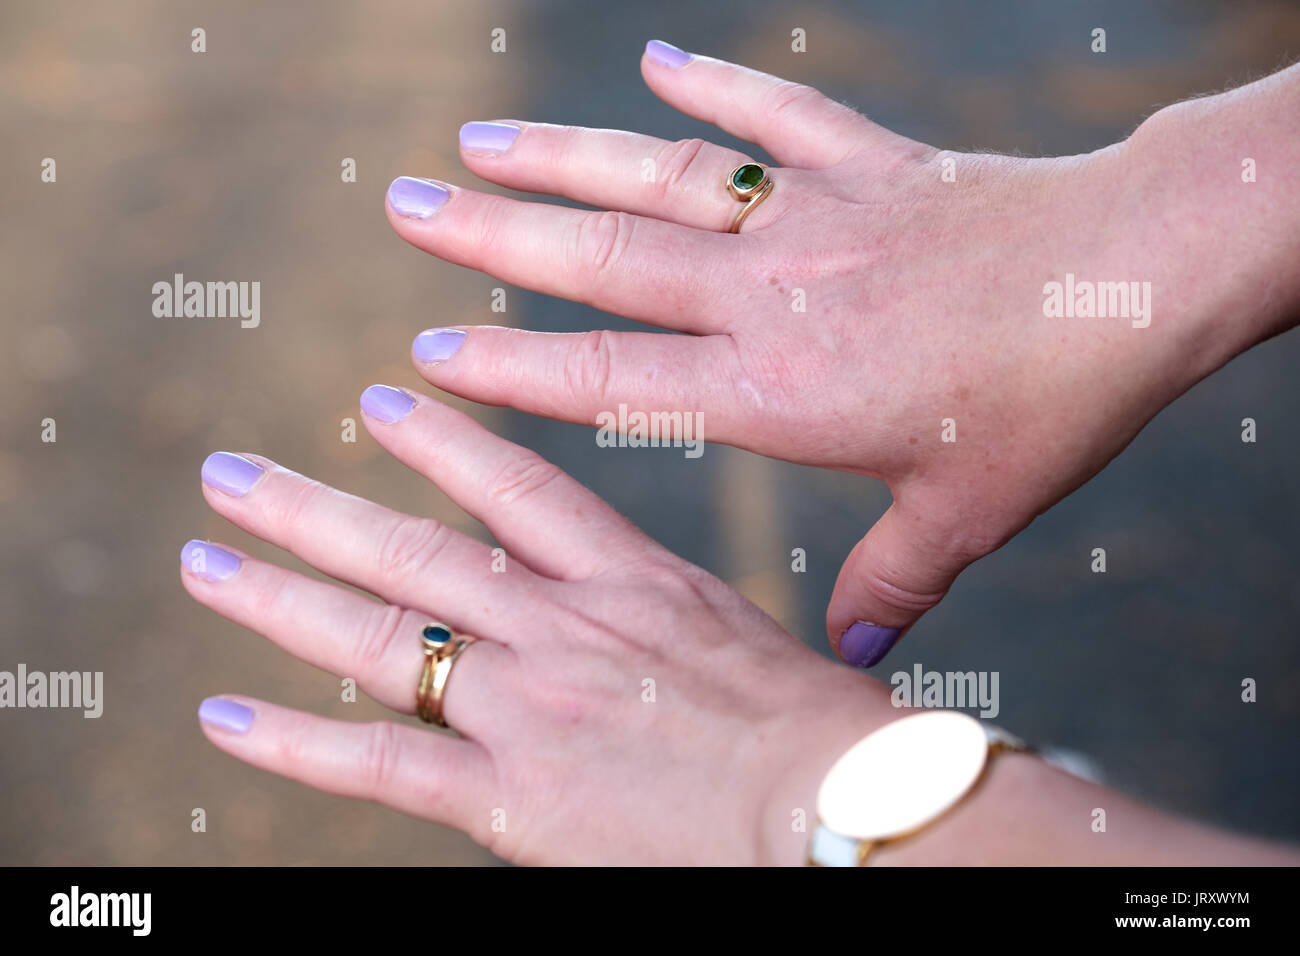 A pair of extremely swollen female hands or fat fingers as a result of excersising in hot weather. A condition caused by the blood vessels expanding - Stock Image